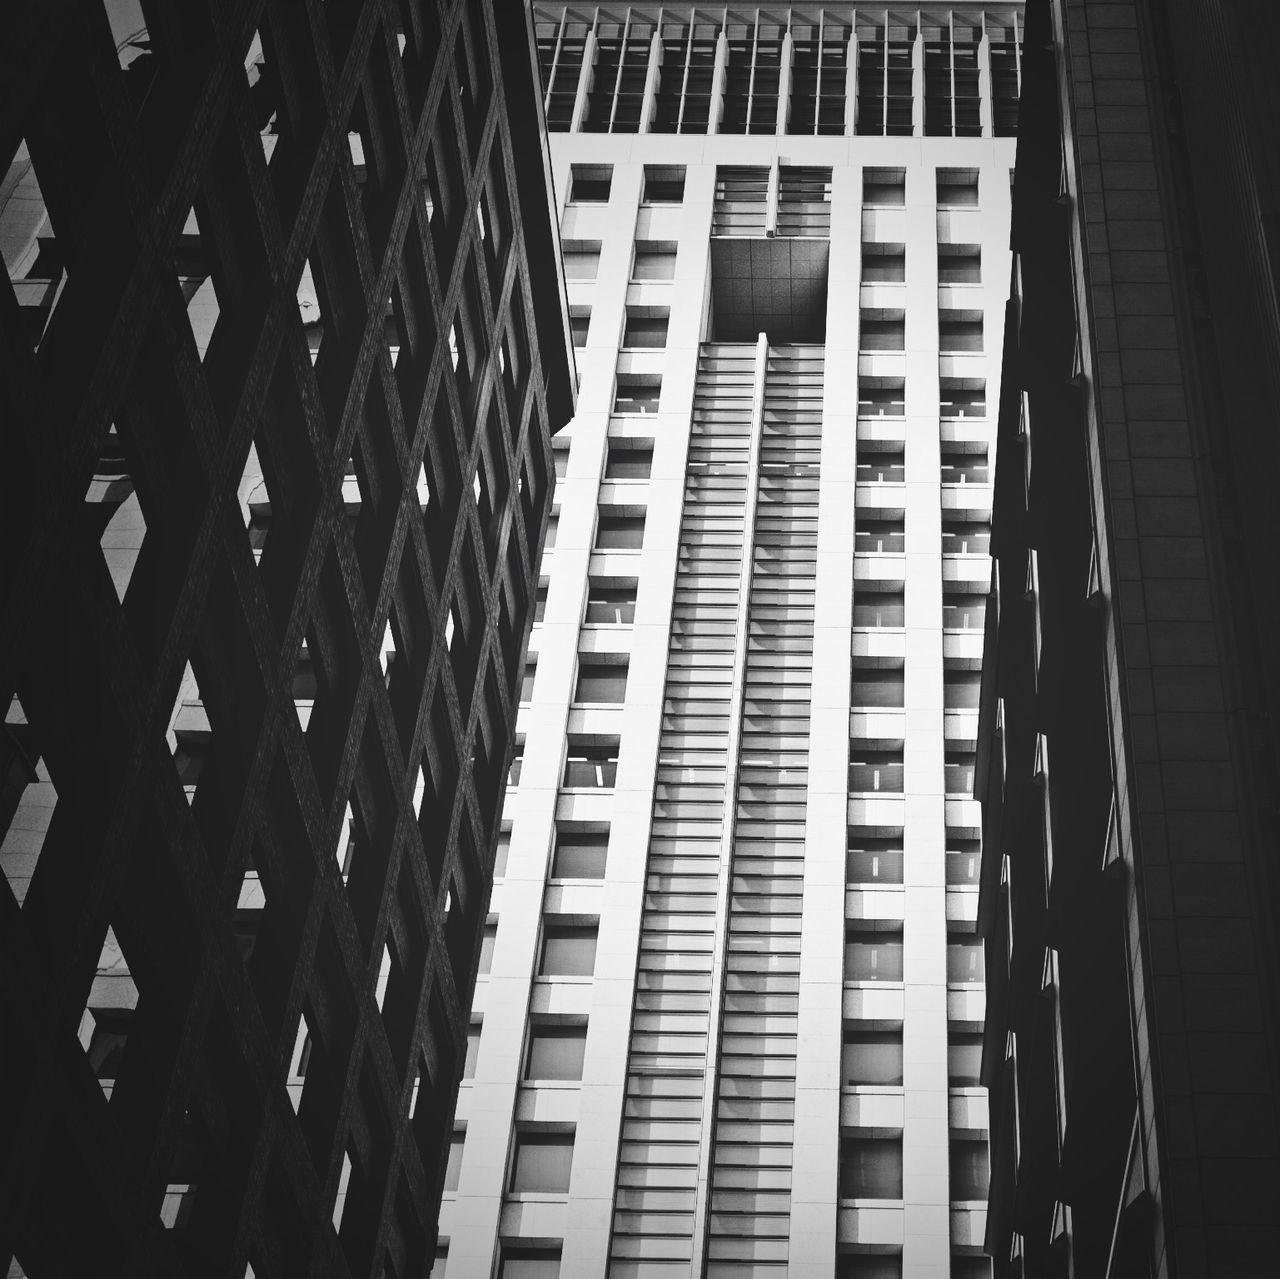 architecture, built structure, building exterior, modern, city, skyscraper, low angle view, no people, day, outdoors, growth